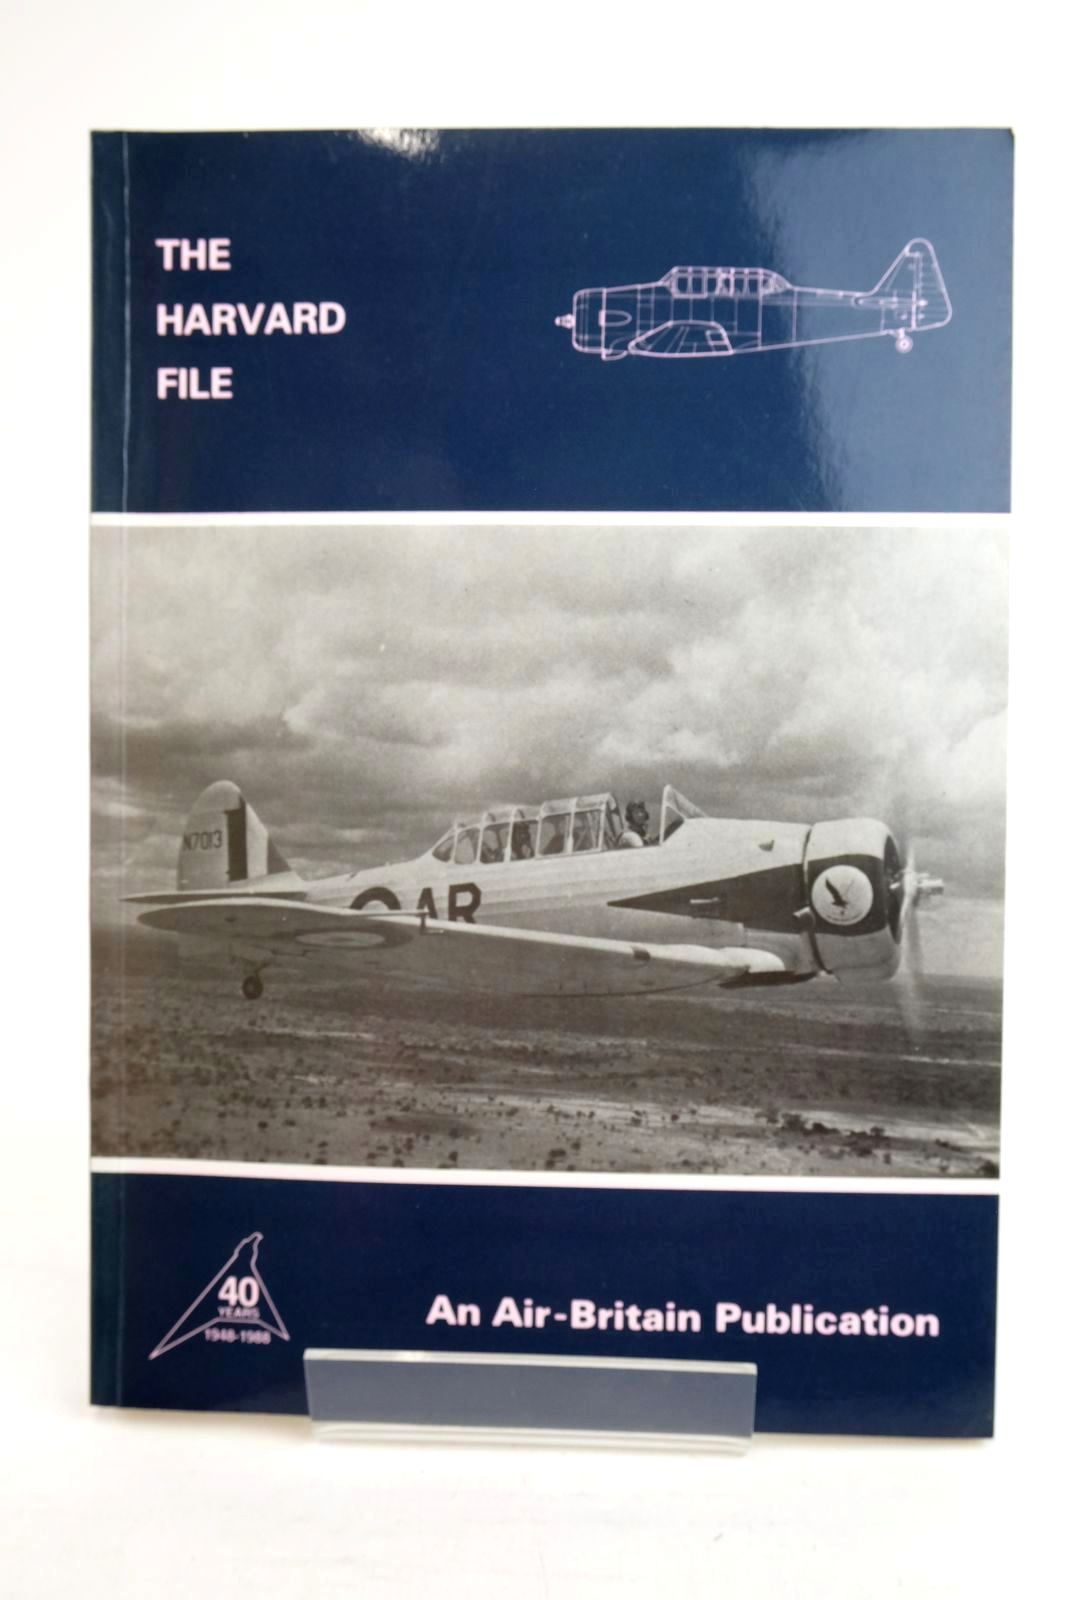 Photo of THE HARVARD FILE written by Hamlin, John F. published by Air-Britain (Historians) Ltd. (STOCK CODE: 1320164)  for sale by Stella & Rose's Books